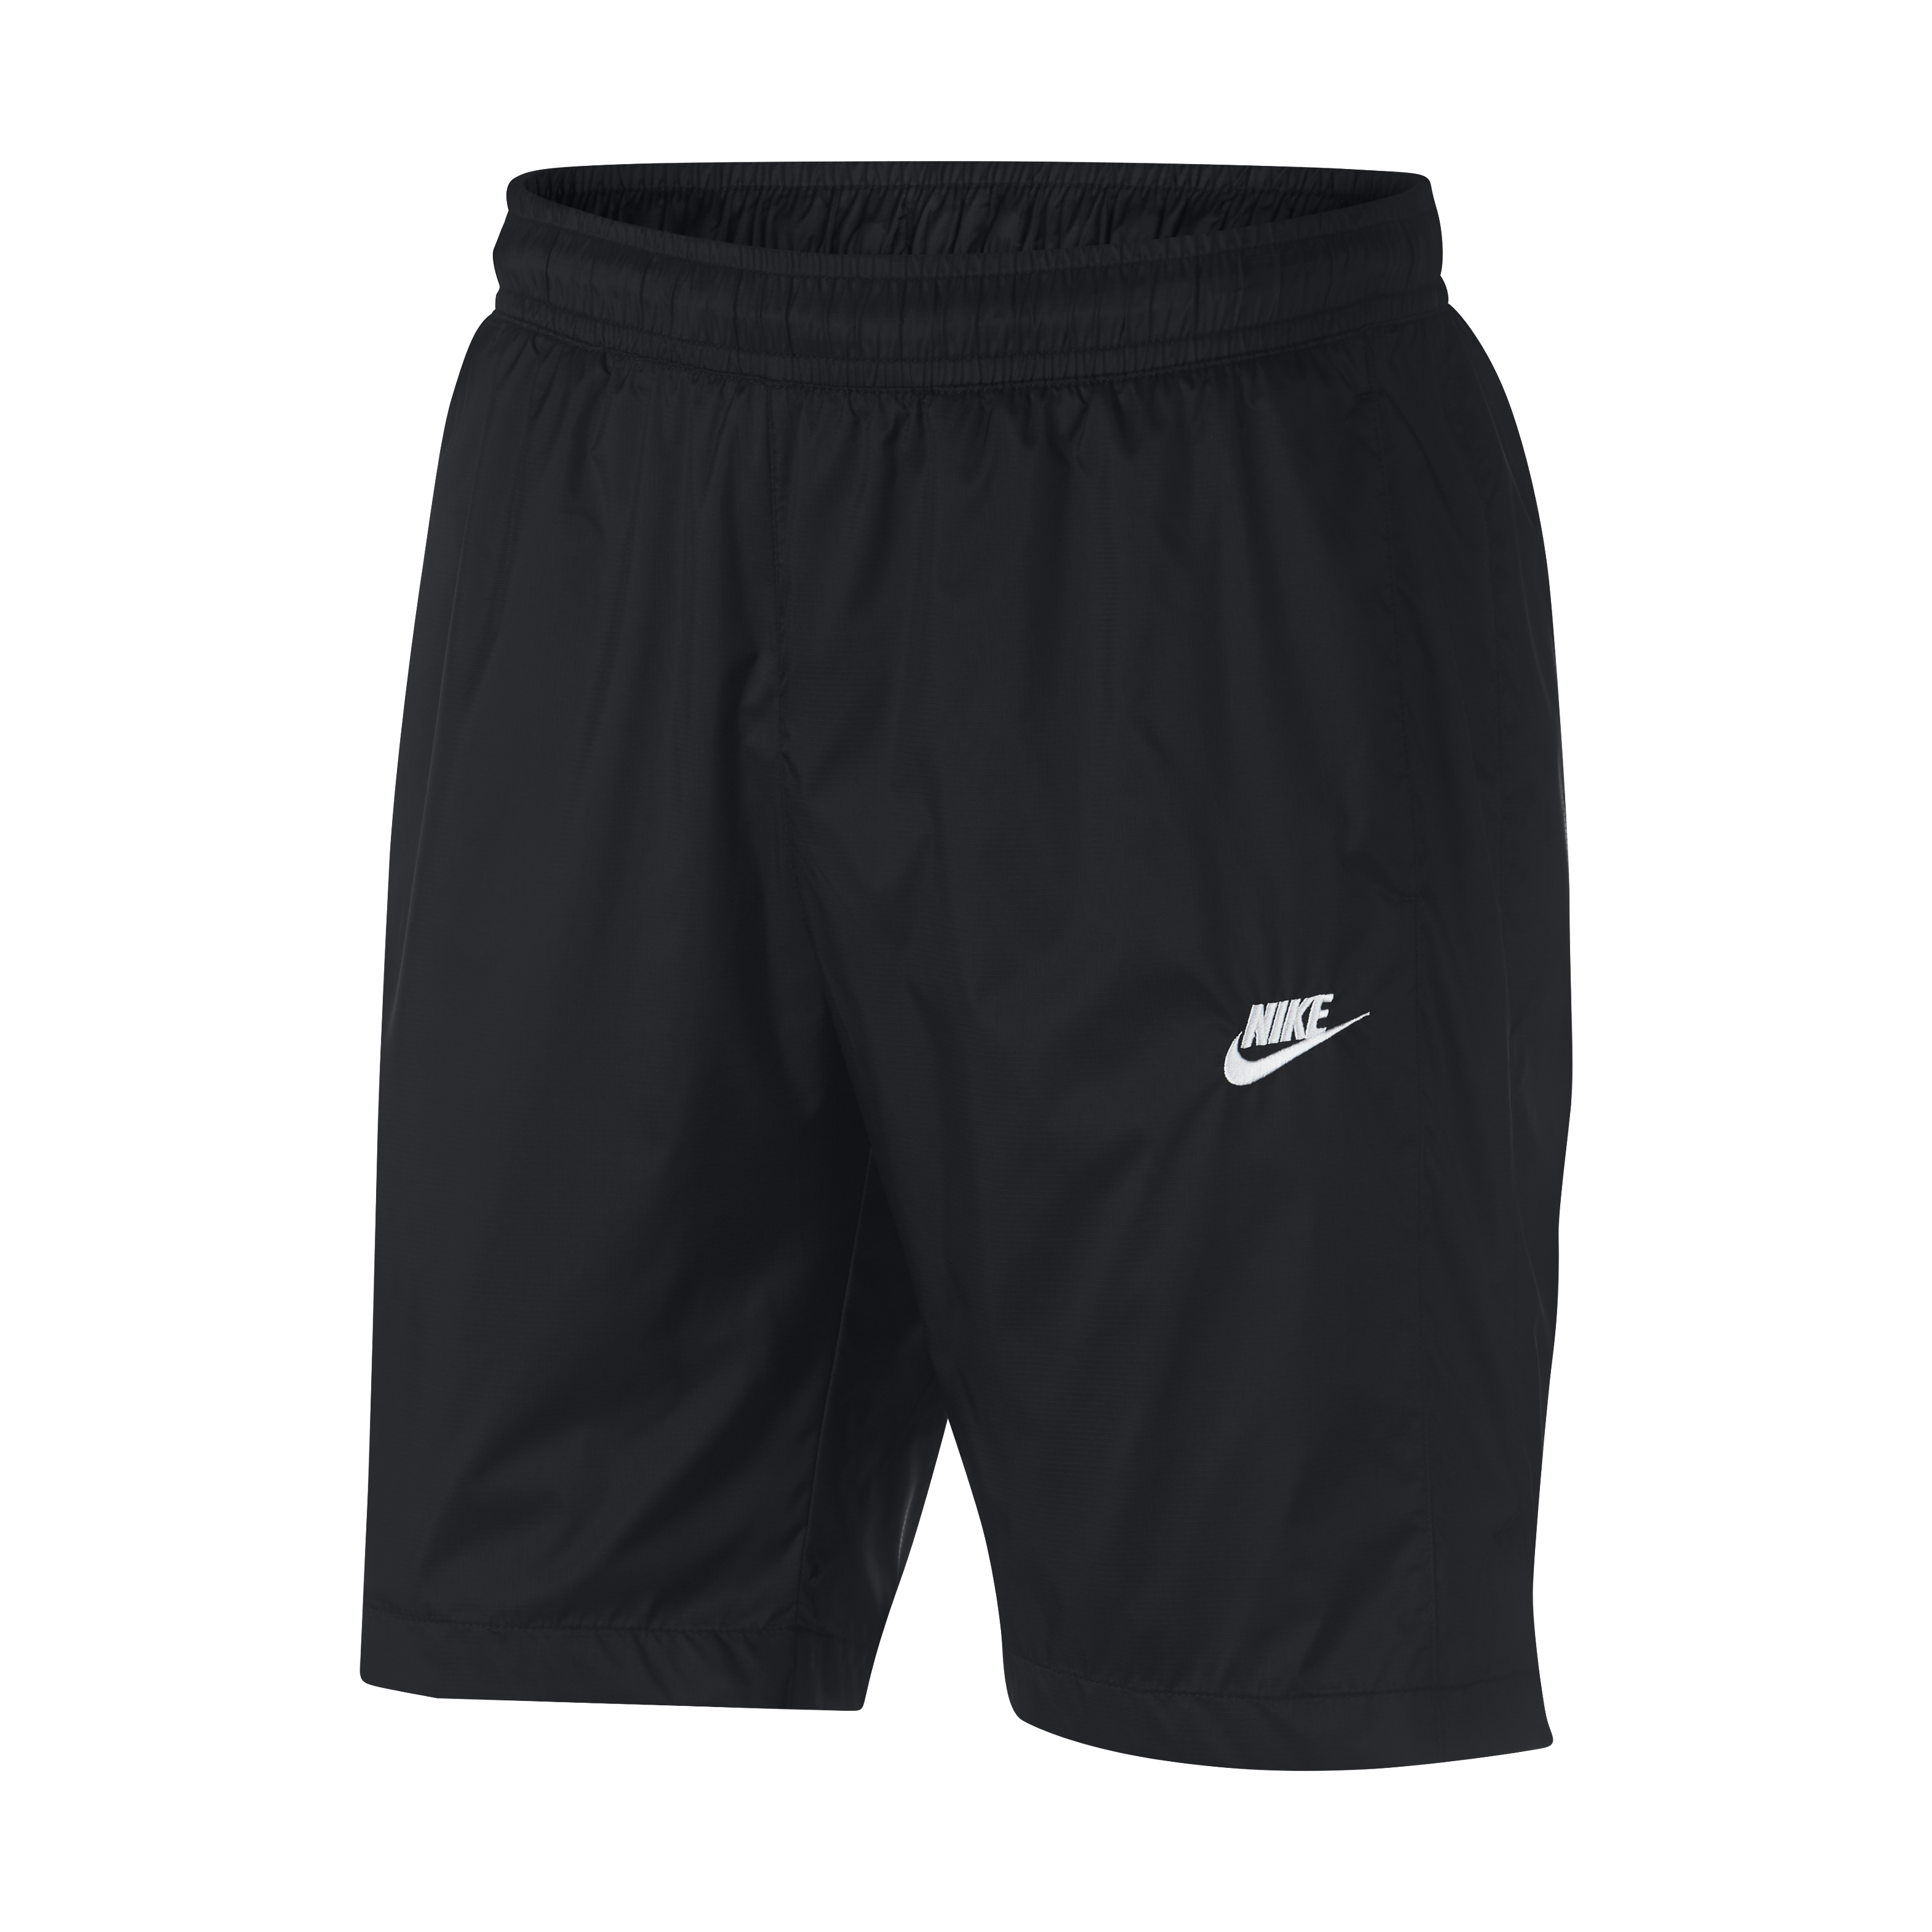 Nike NSW Woven Shorts Black-White